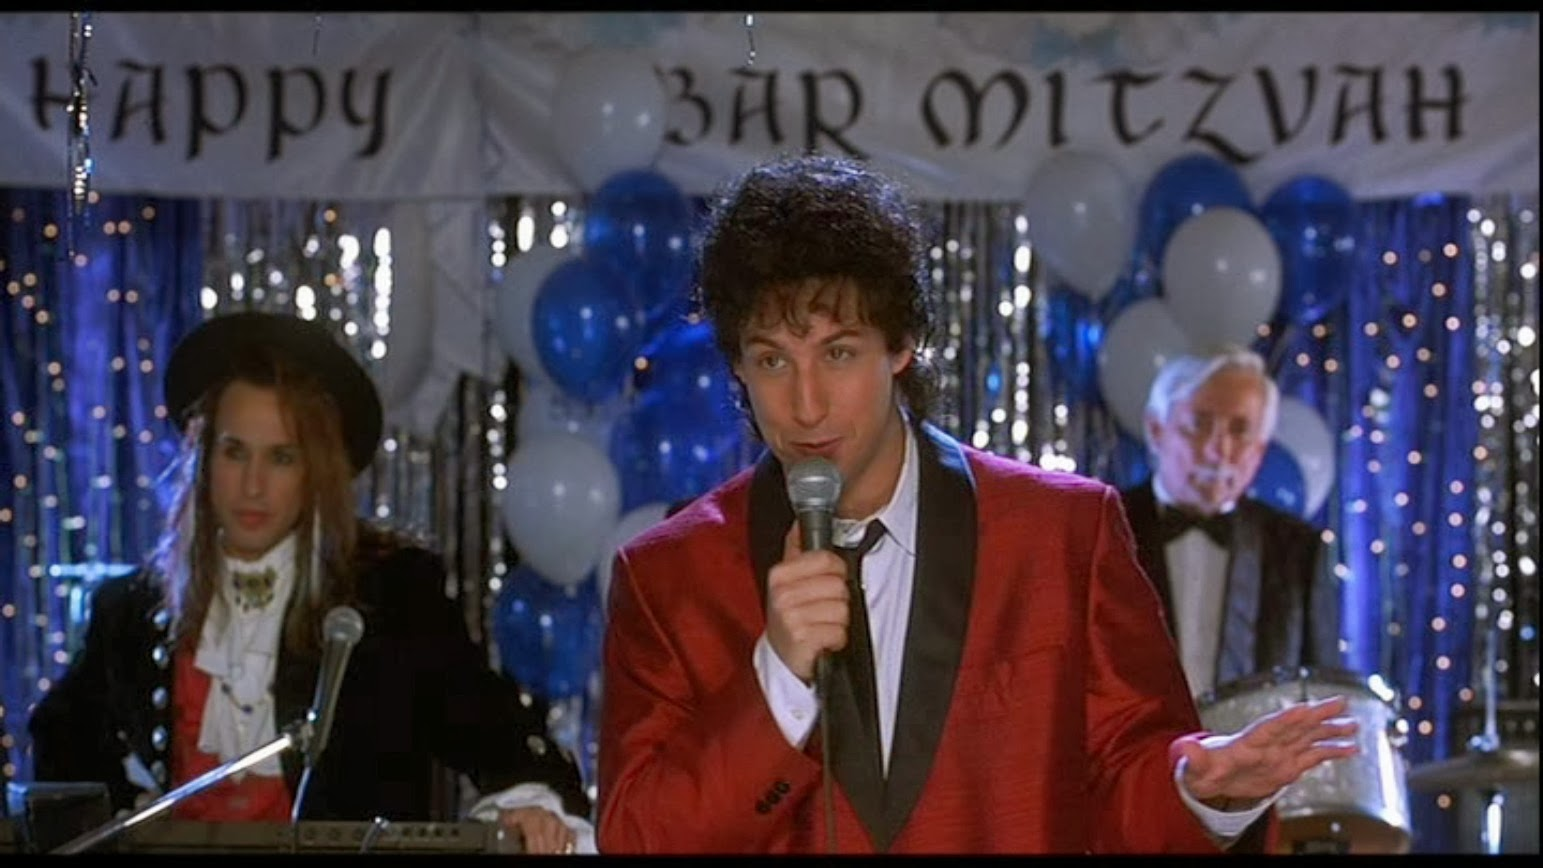 The Wedding Singer Movie Quotes QuotesGram